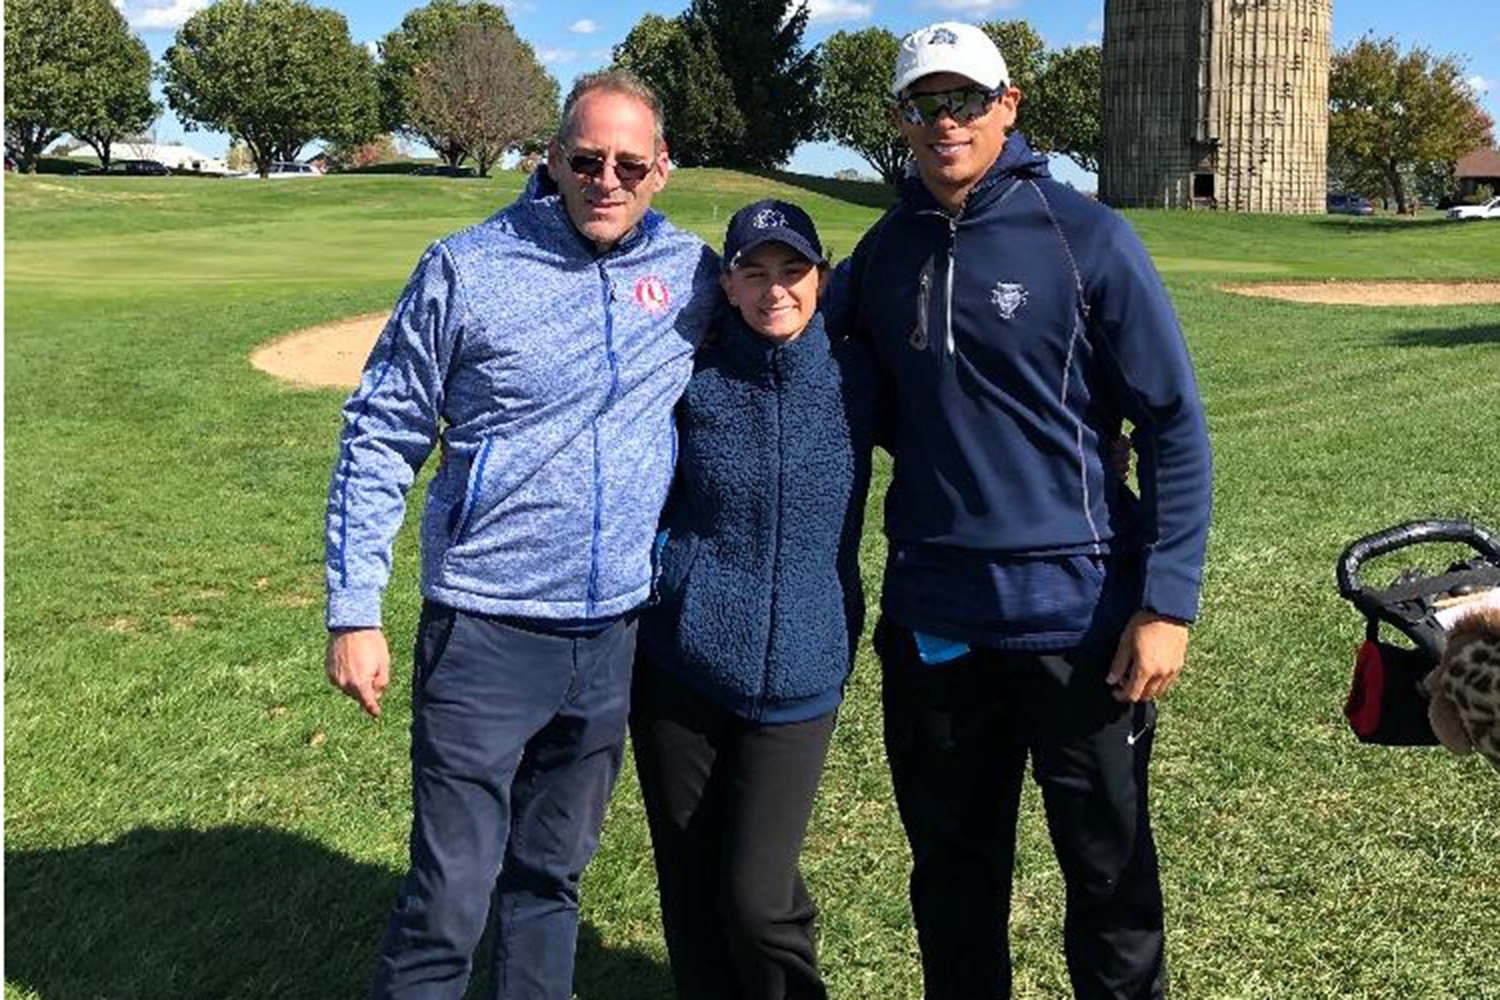 Gabrielle Berger with Coaches Paul Otto (left) and Johnathan Clark (right) at state. Coach Otto is the head coach and both helped Berger all season.